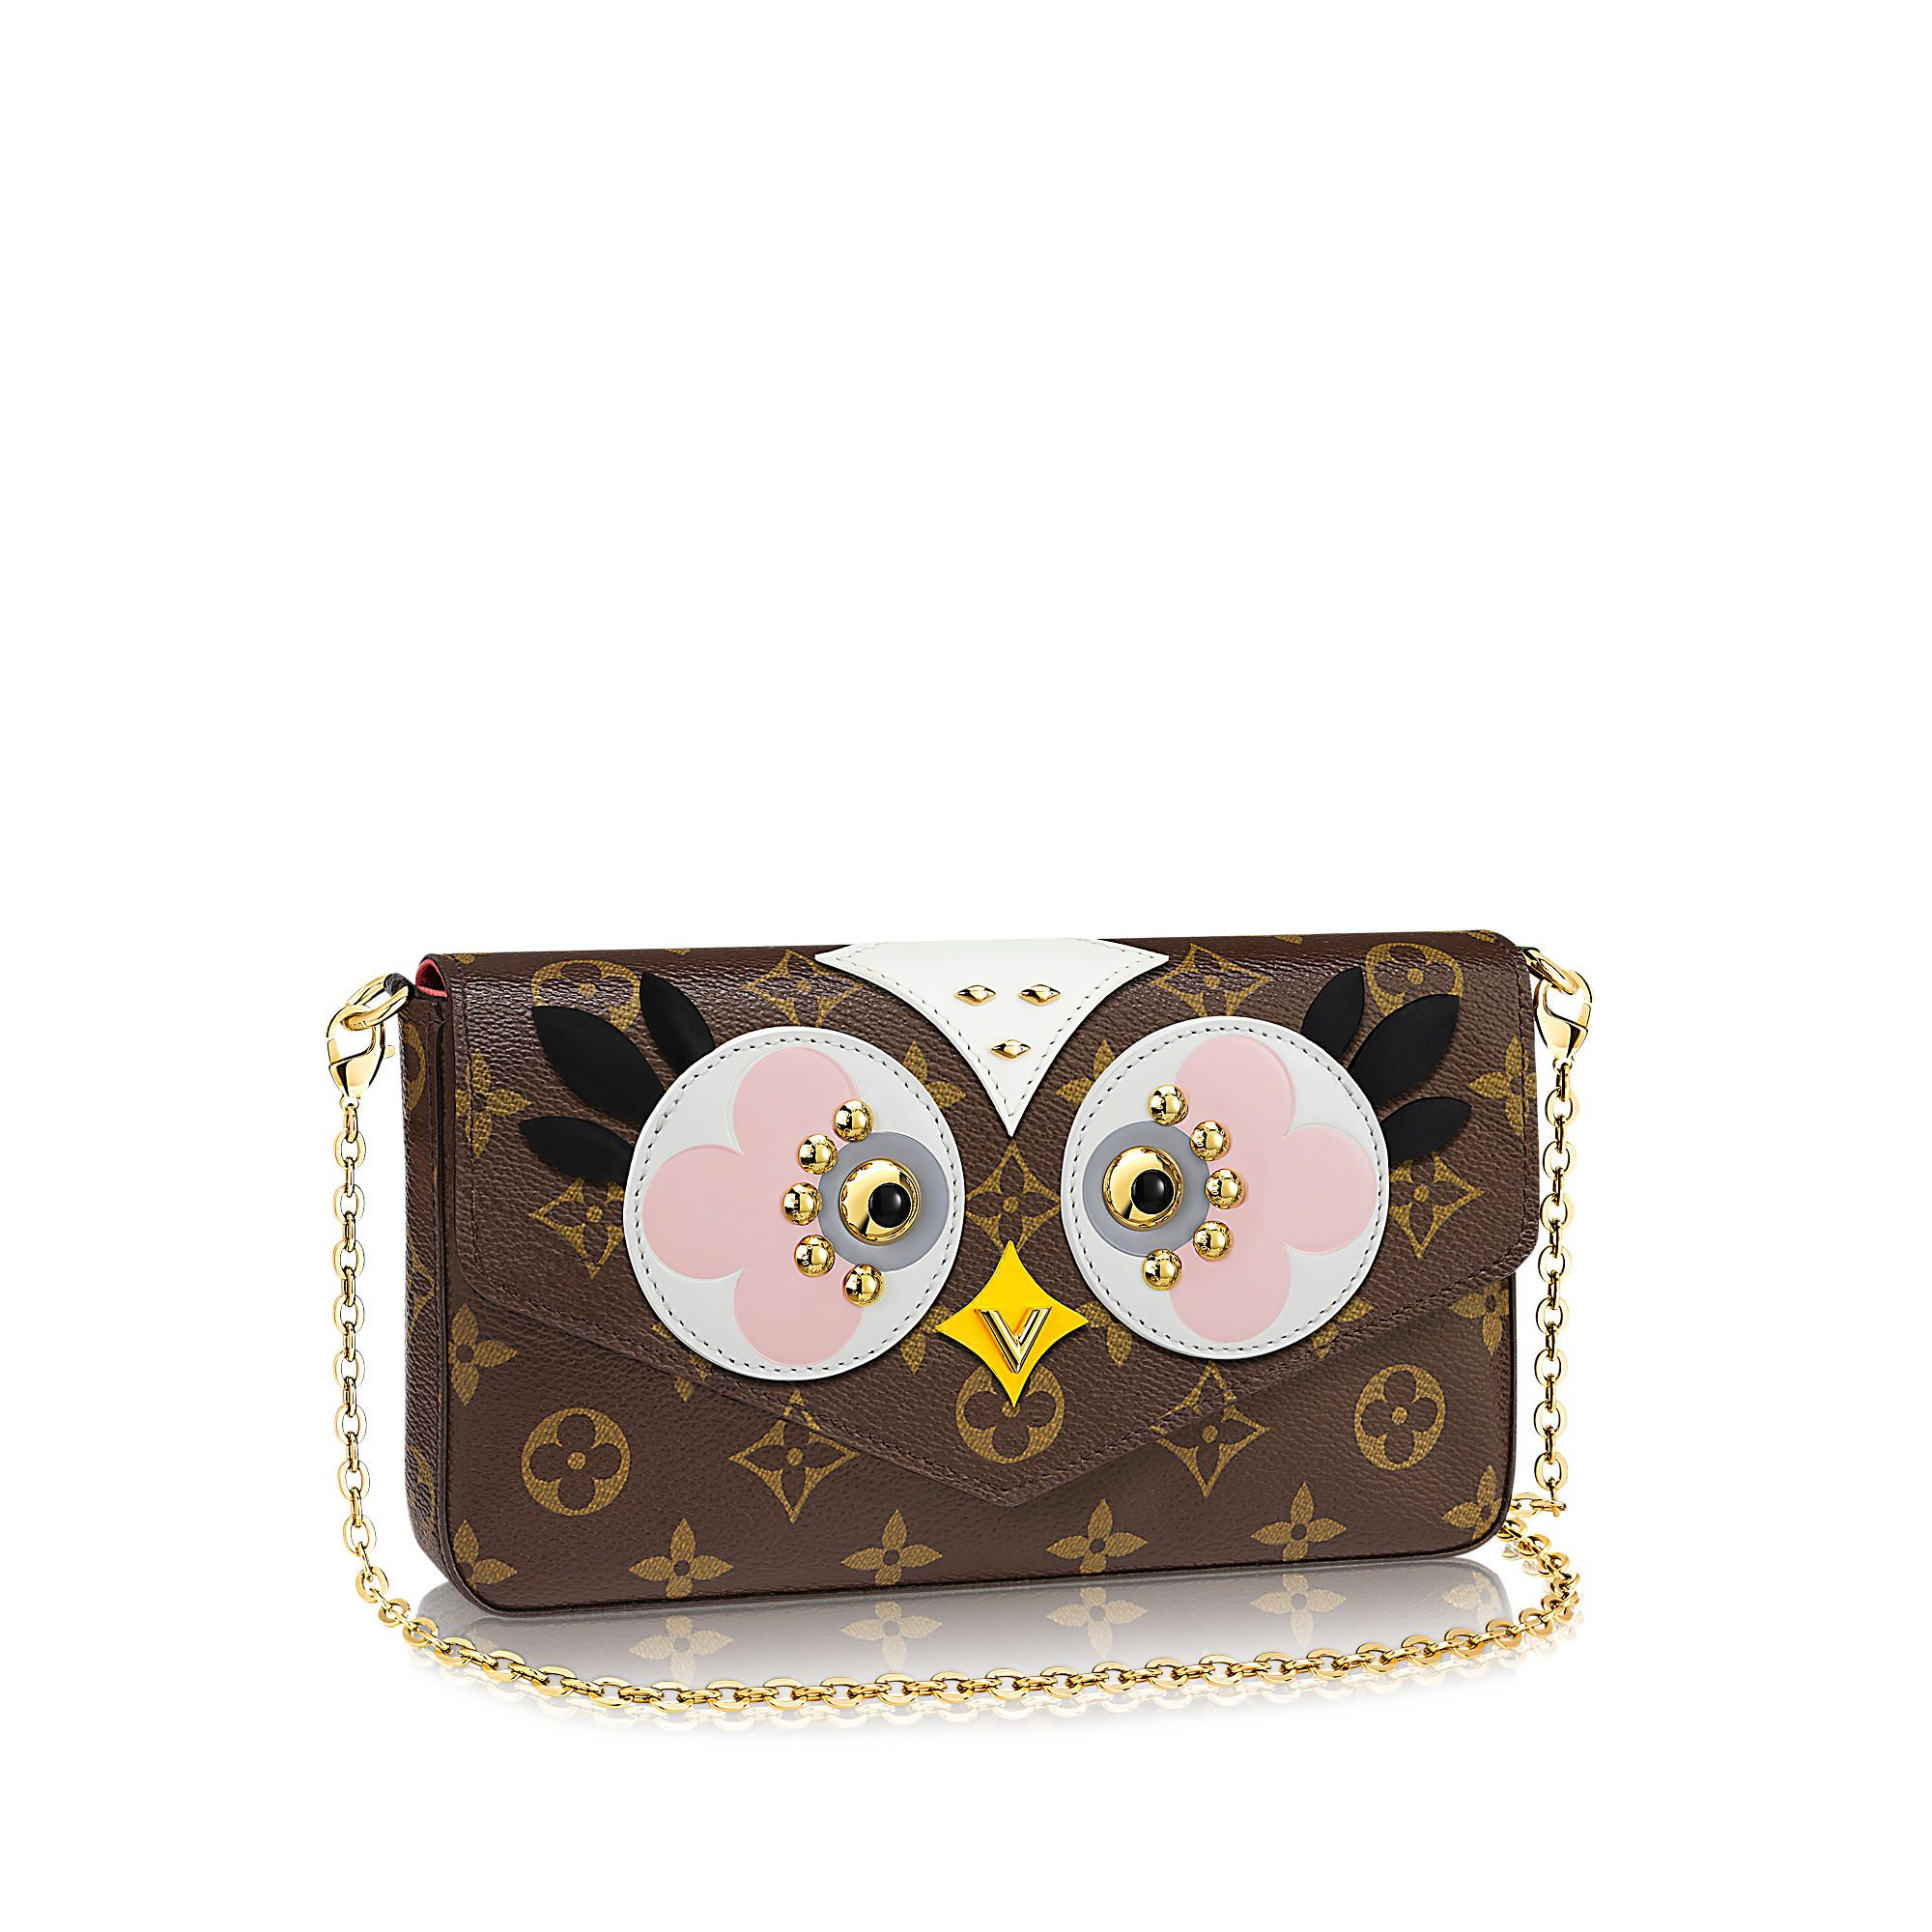 Discover Louis Vuitton Pochette Felicie via Louis Vuitton   Handbags ... 08533e8bec0